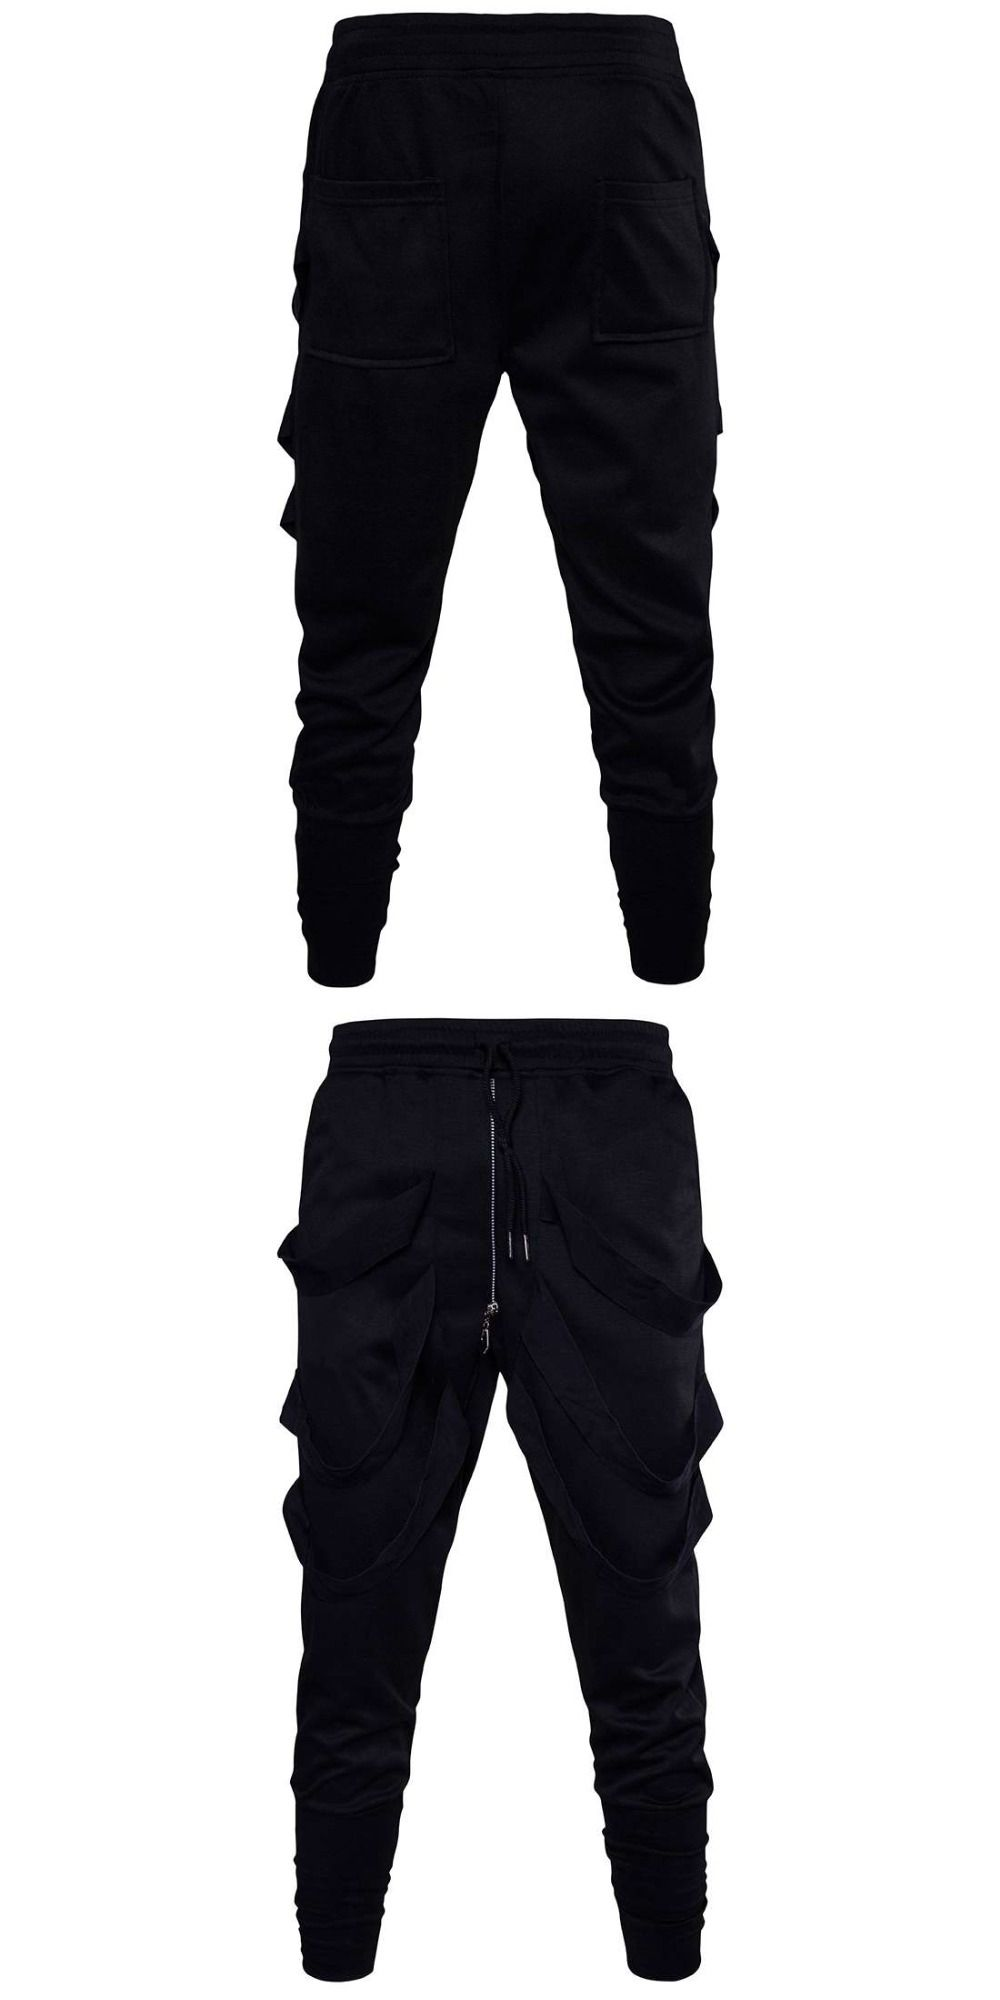 db26a46f985  1621 Hip hop pants men Black Harem track pants With ribbons Fashion Spring  trousers 2018 Joggers Sweatpants Pantalon hombre 3XL